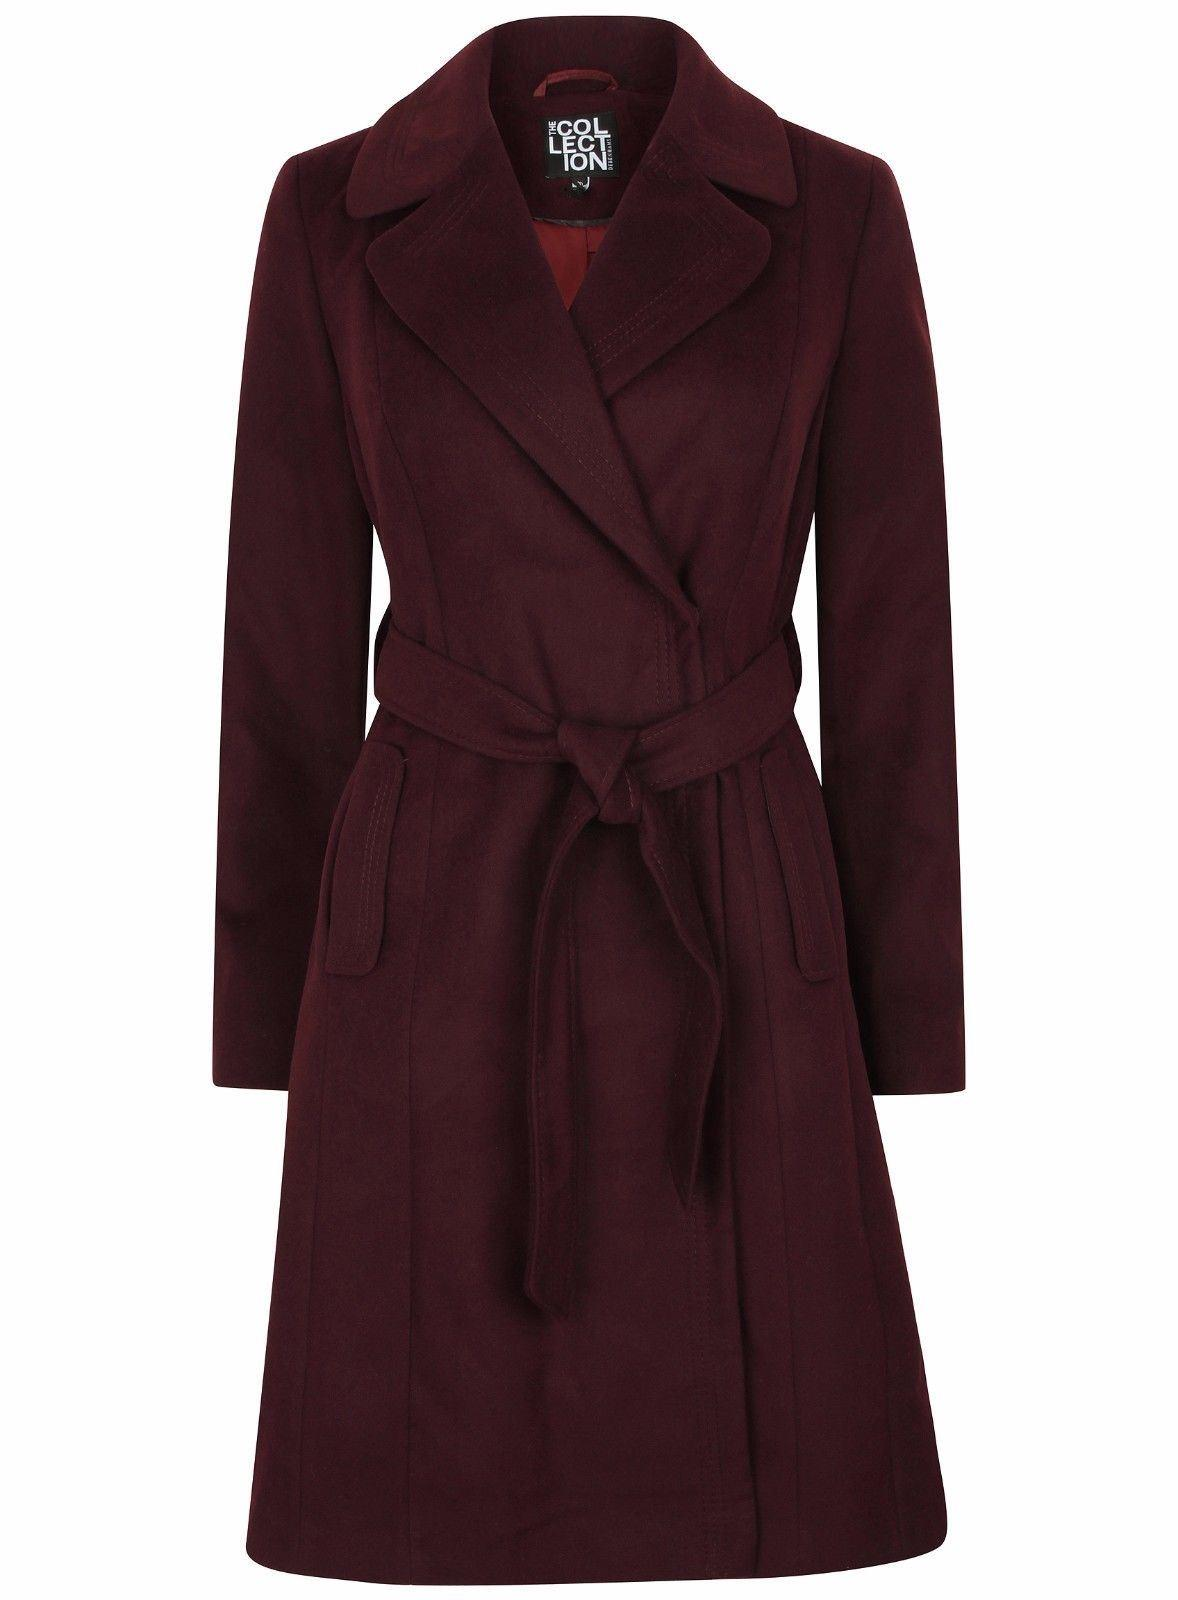 Anastasia Womens Burgandy Belted Wrap Winter Coat